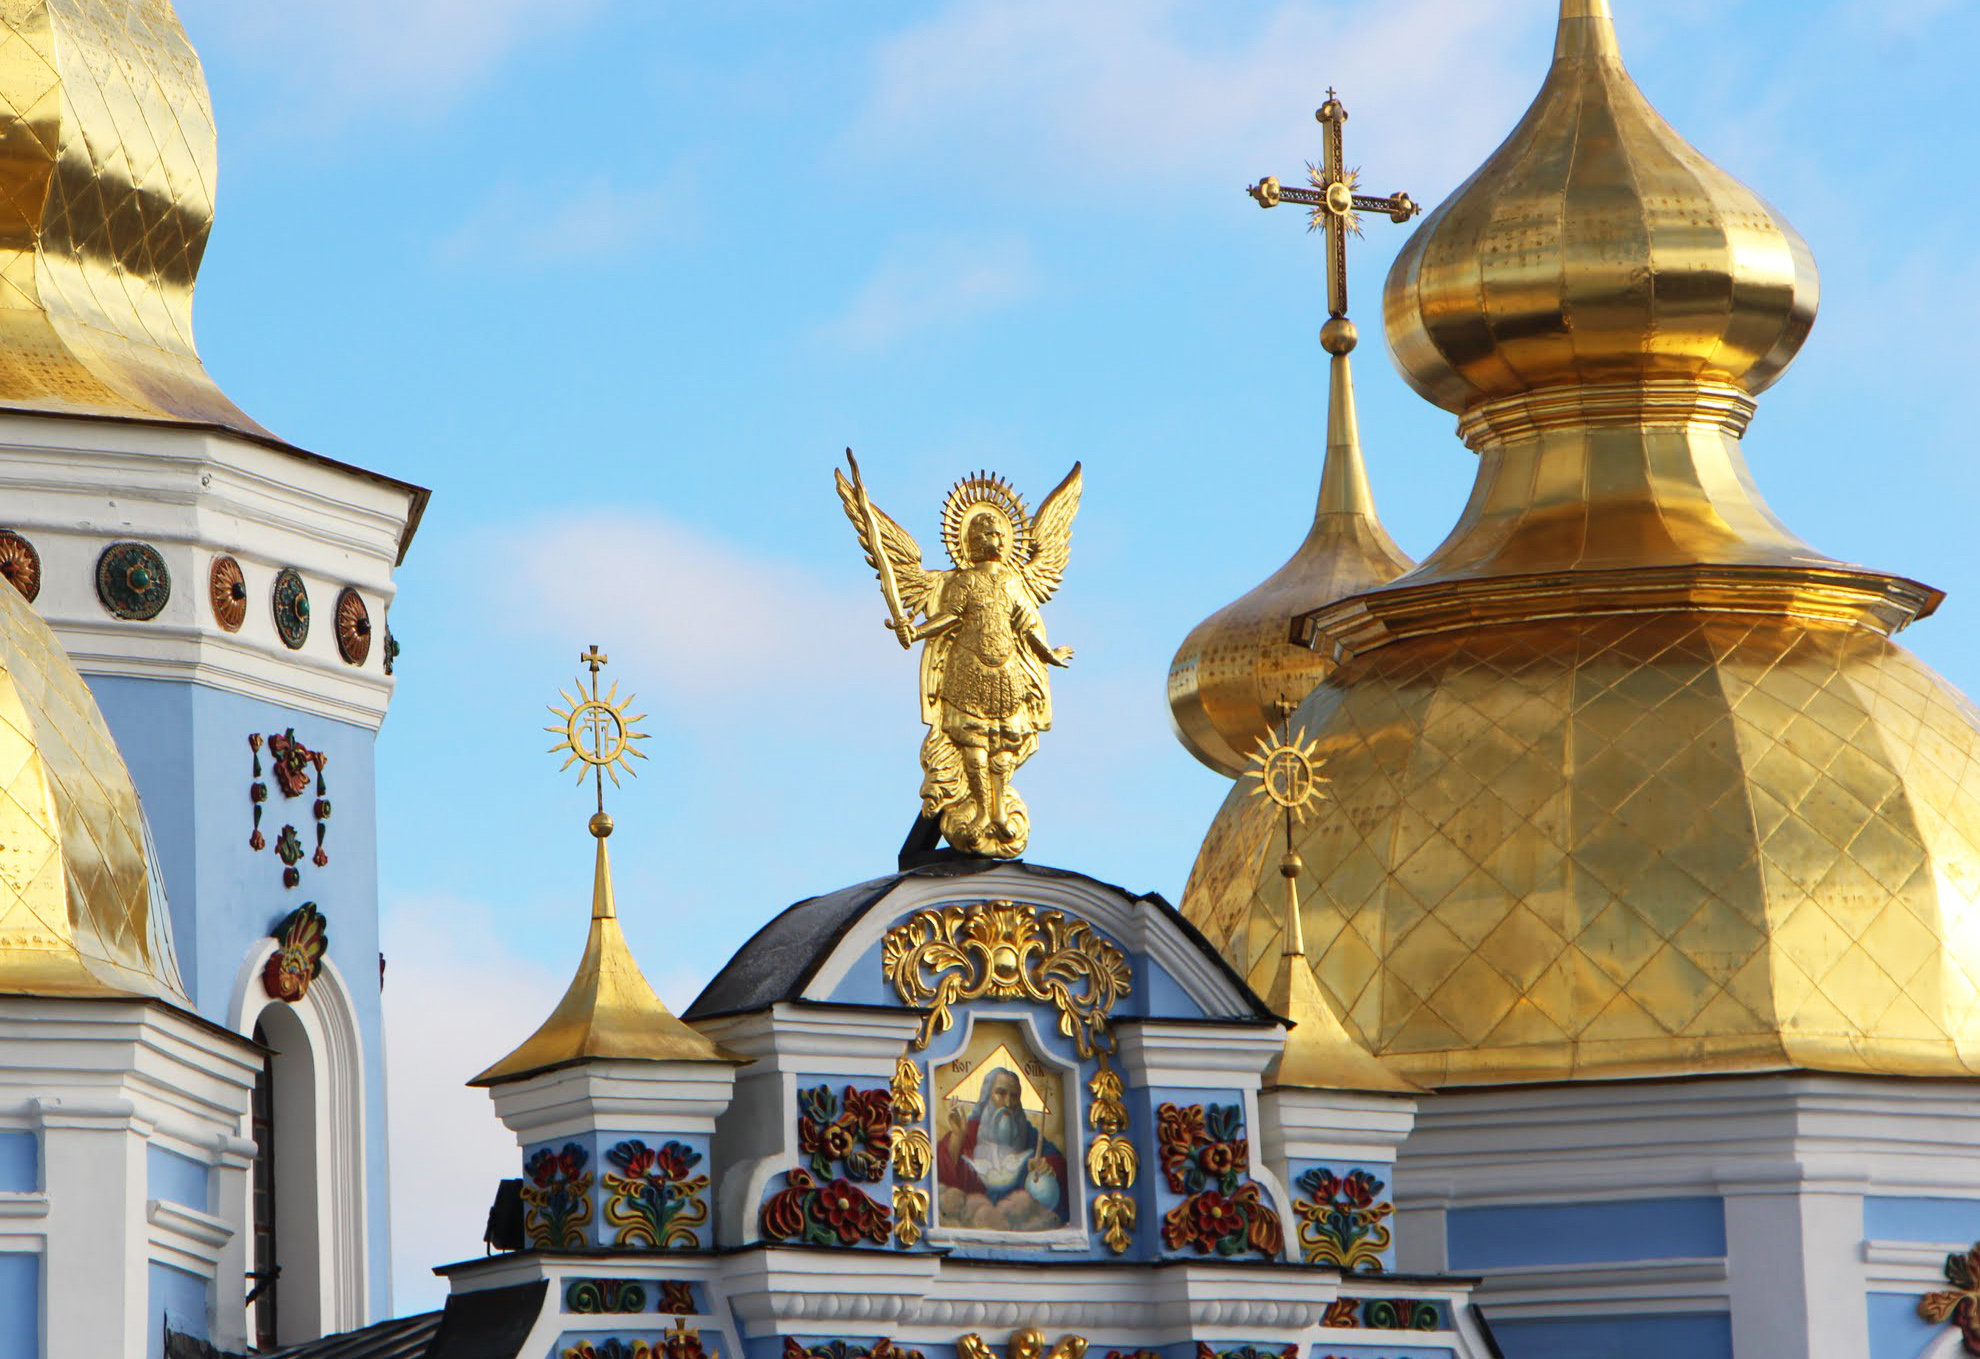 Archangel Michael - guardian of Kyiv